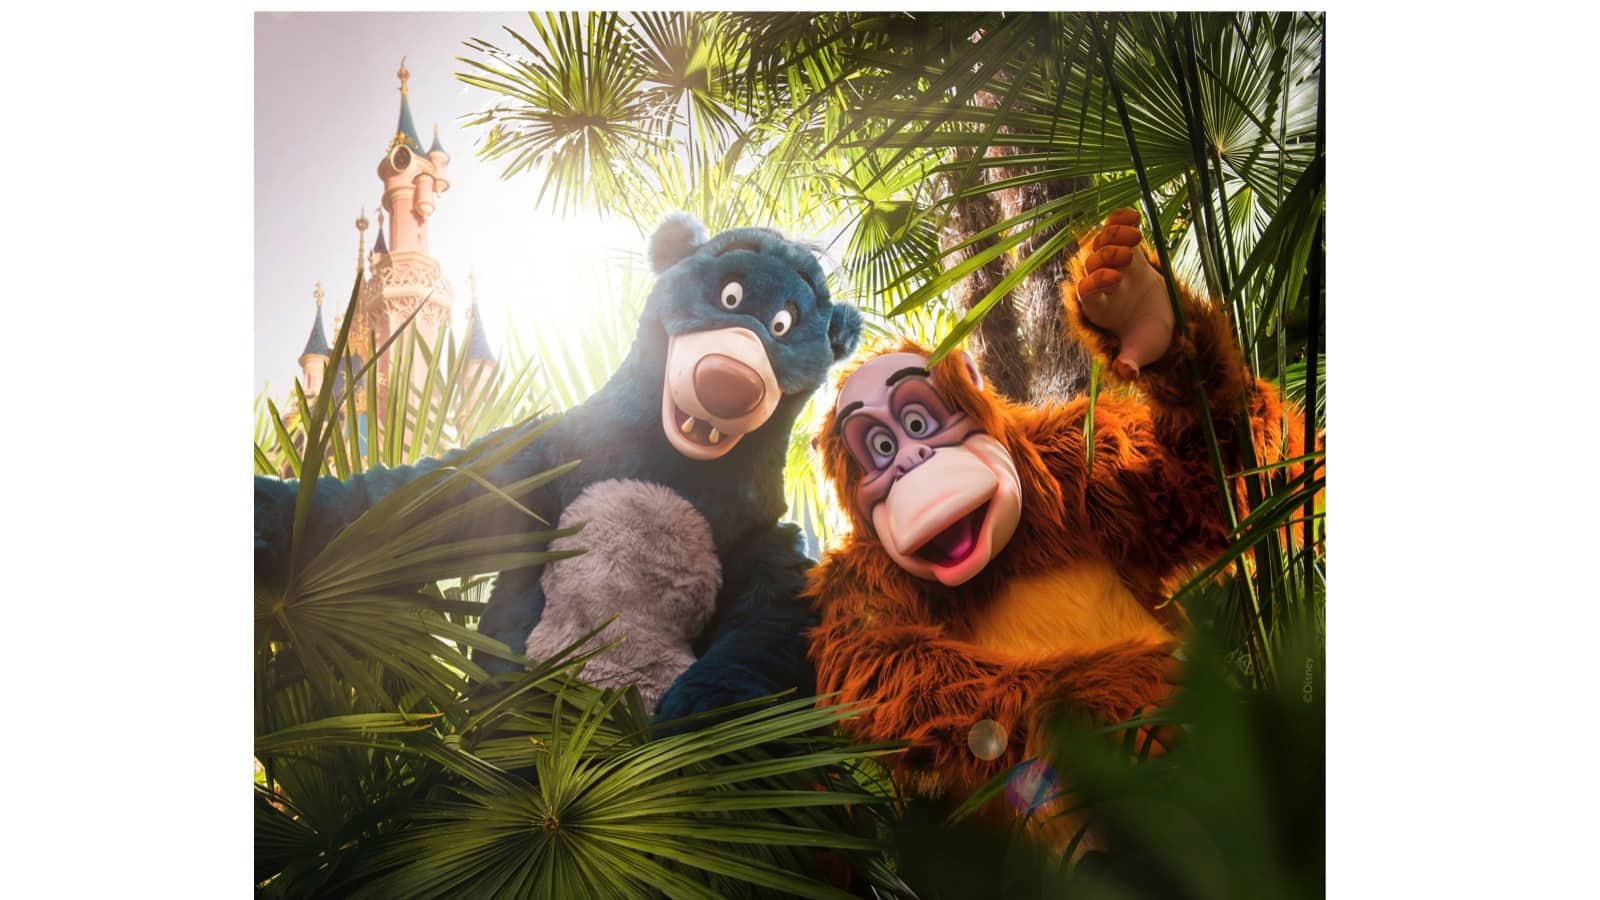 The Lion King & Jungle Festival at Disneyland Paris